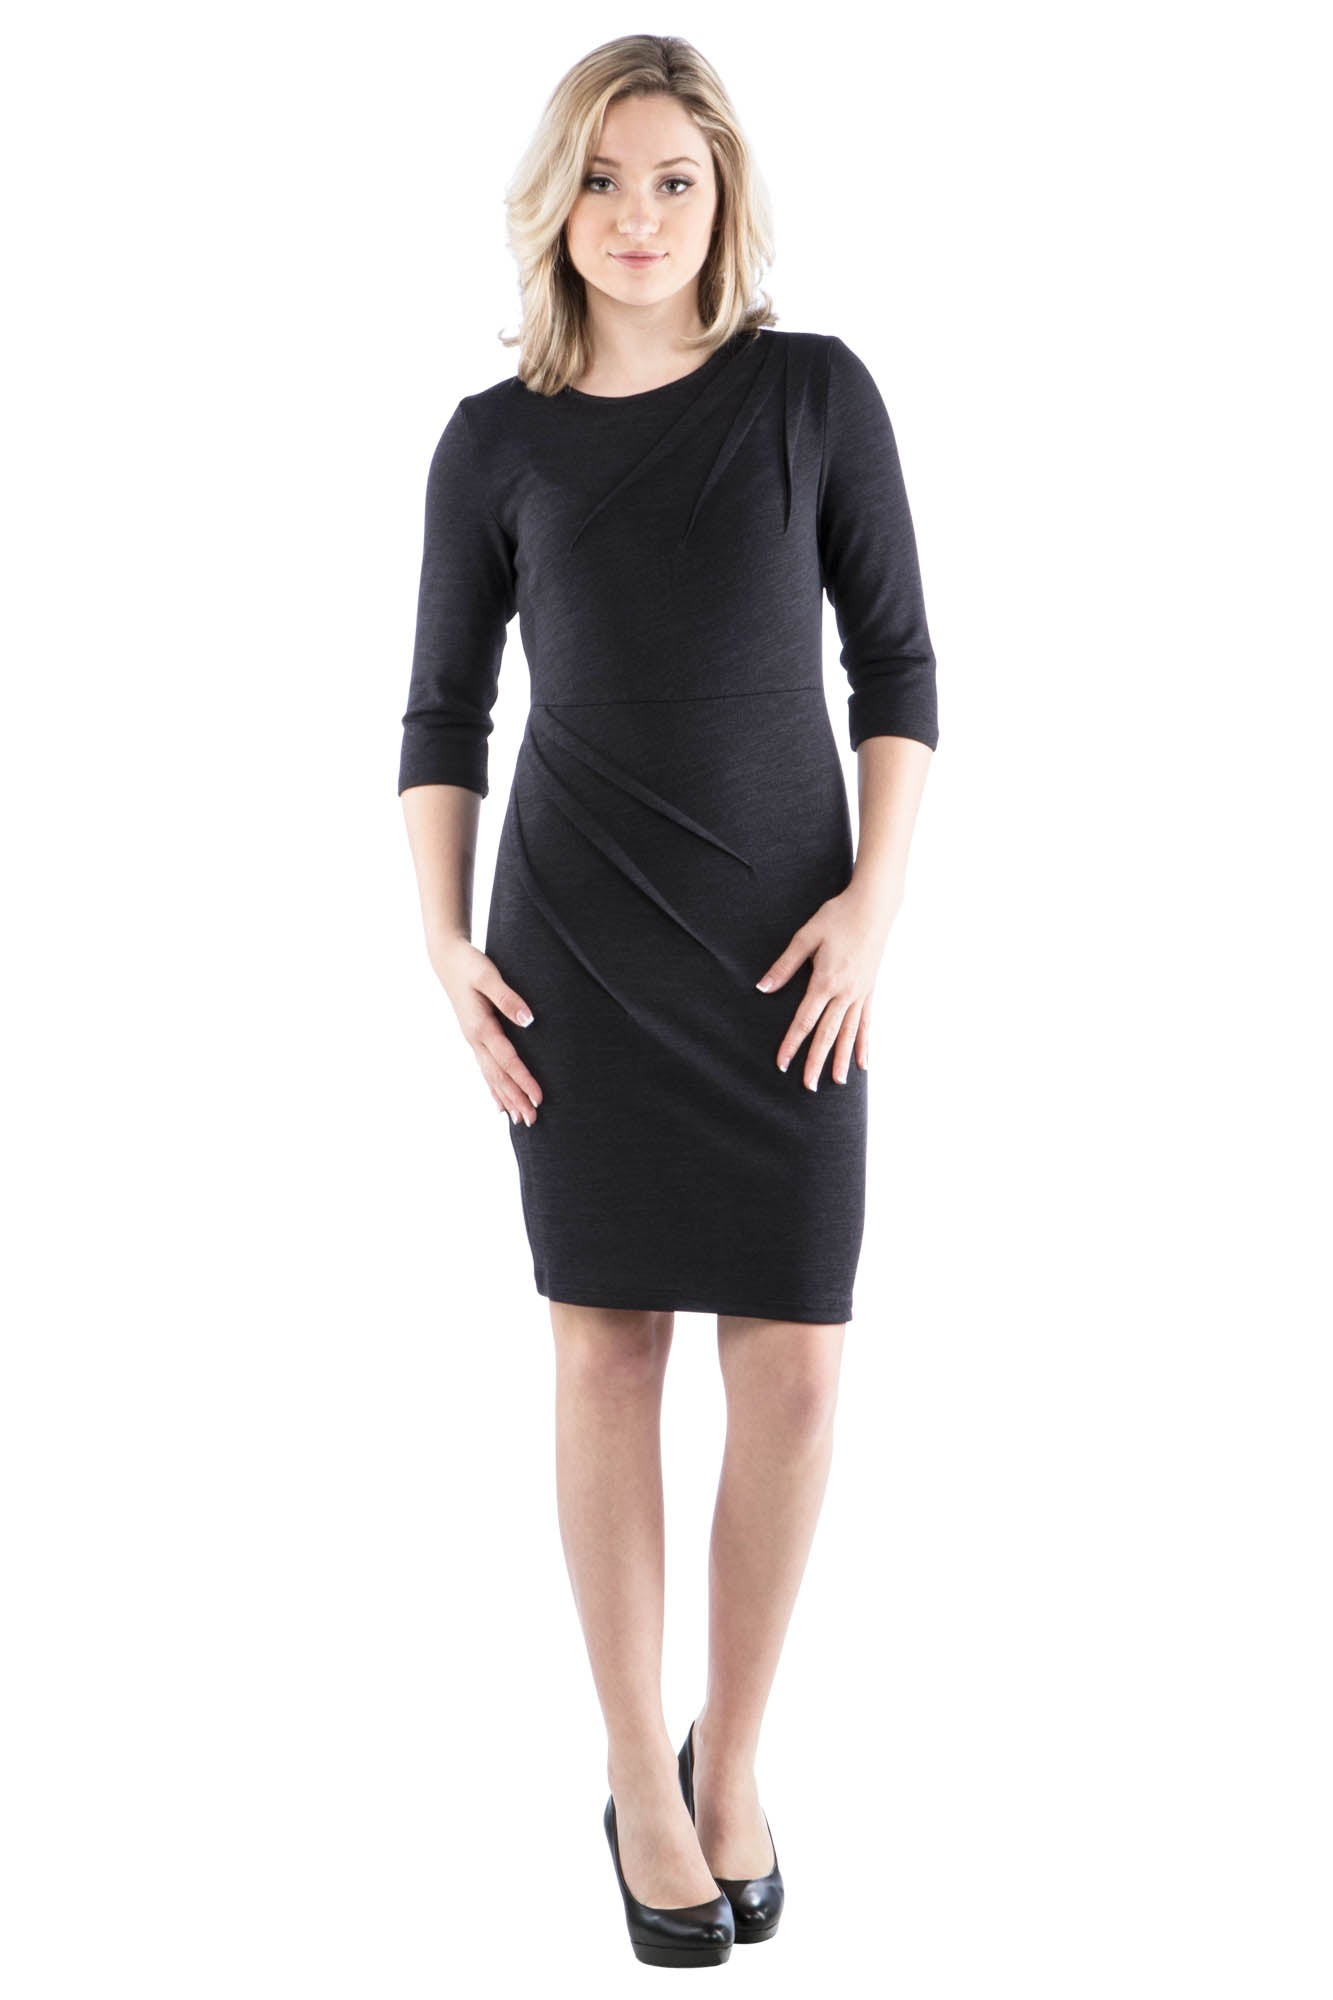 Sweater Dress with Diagonal Pleating Details